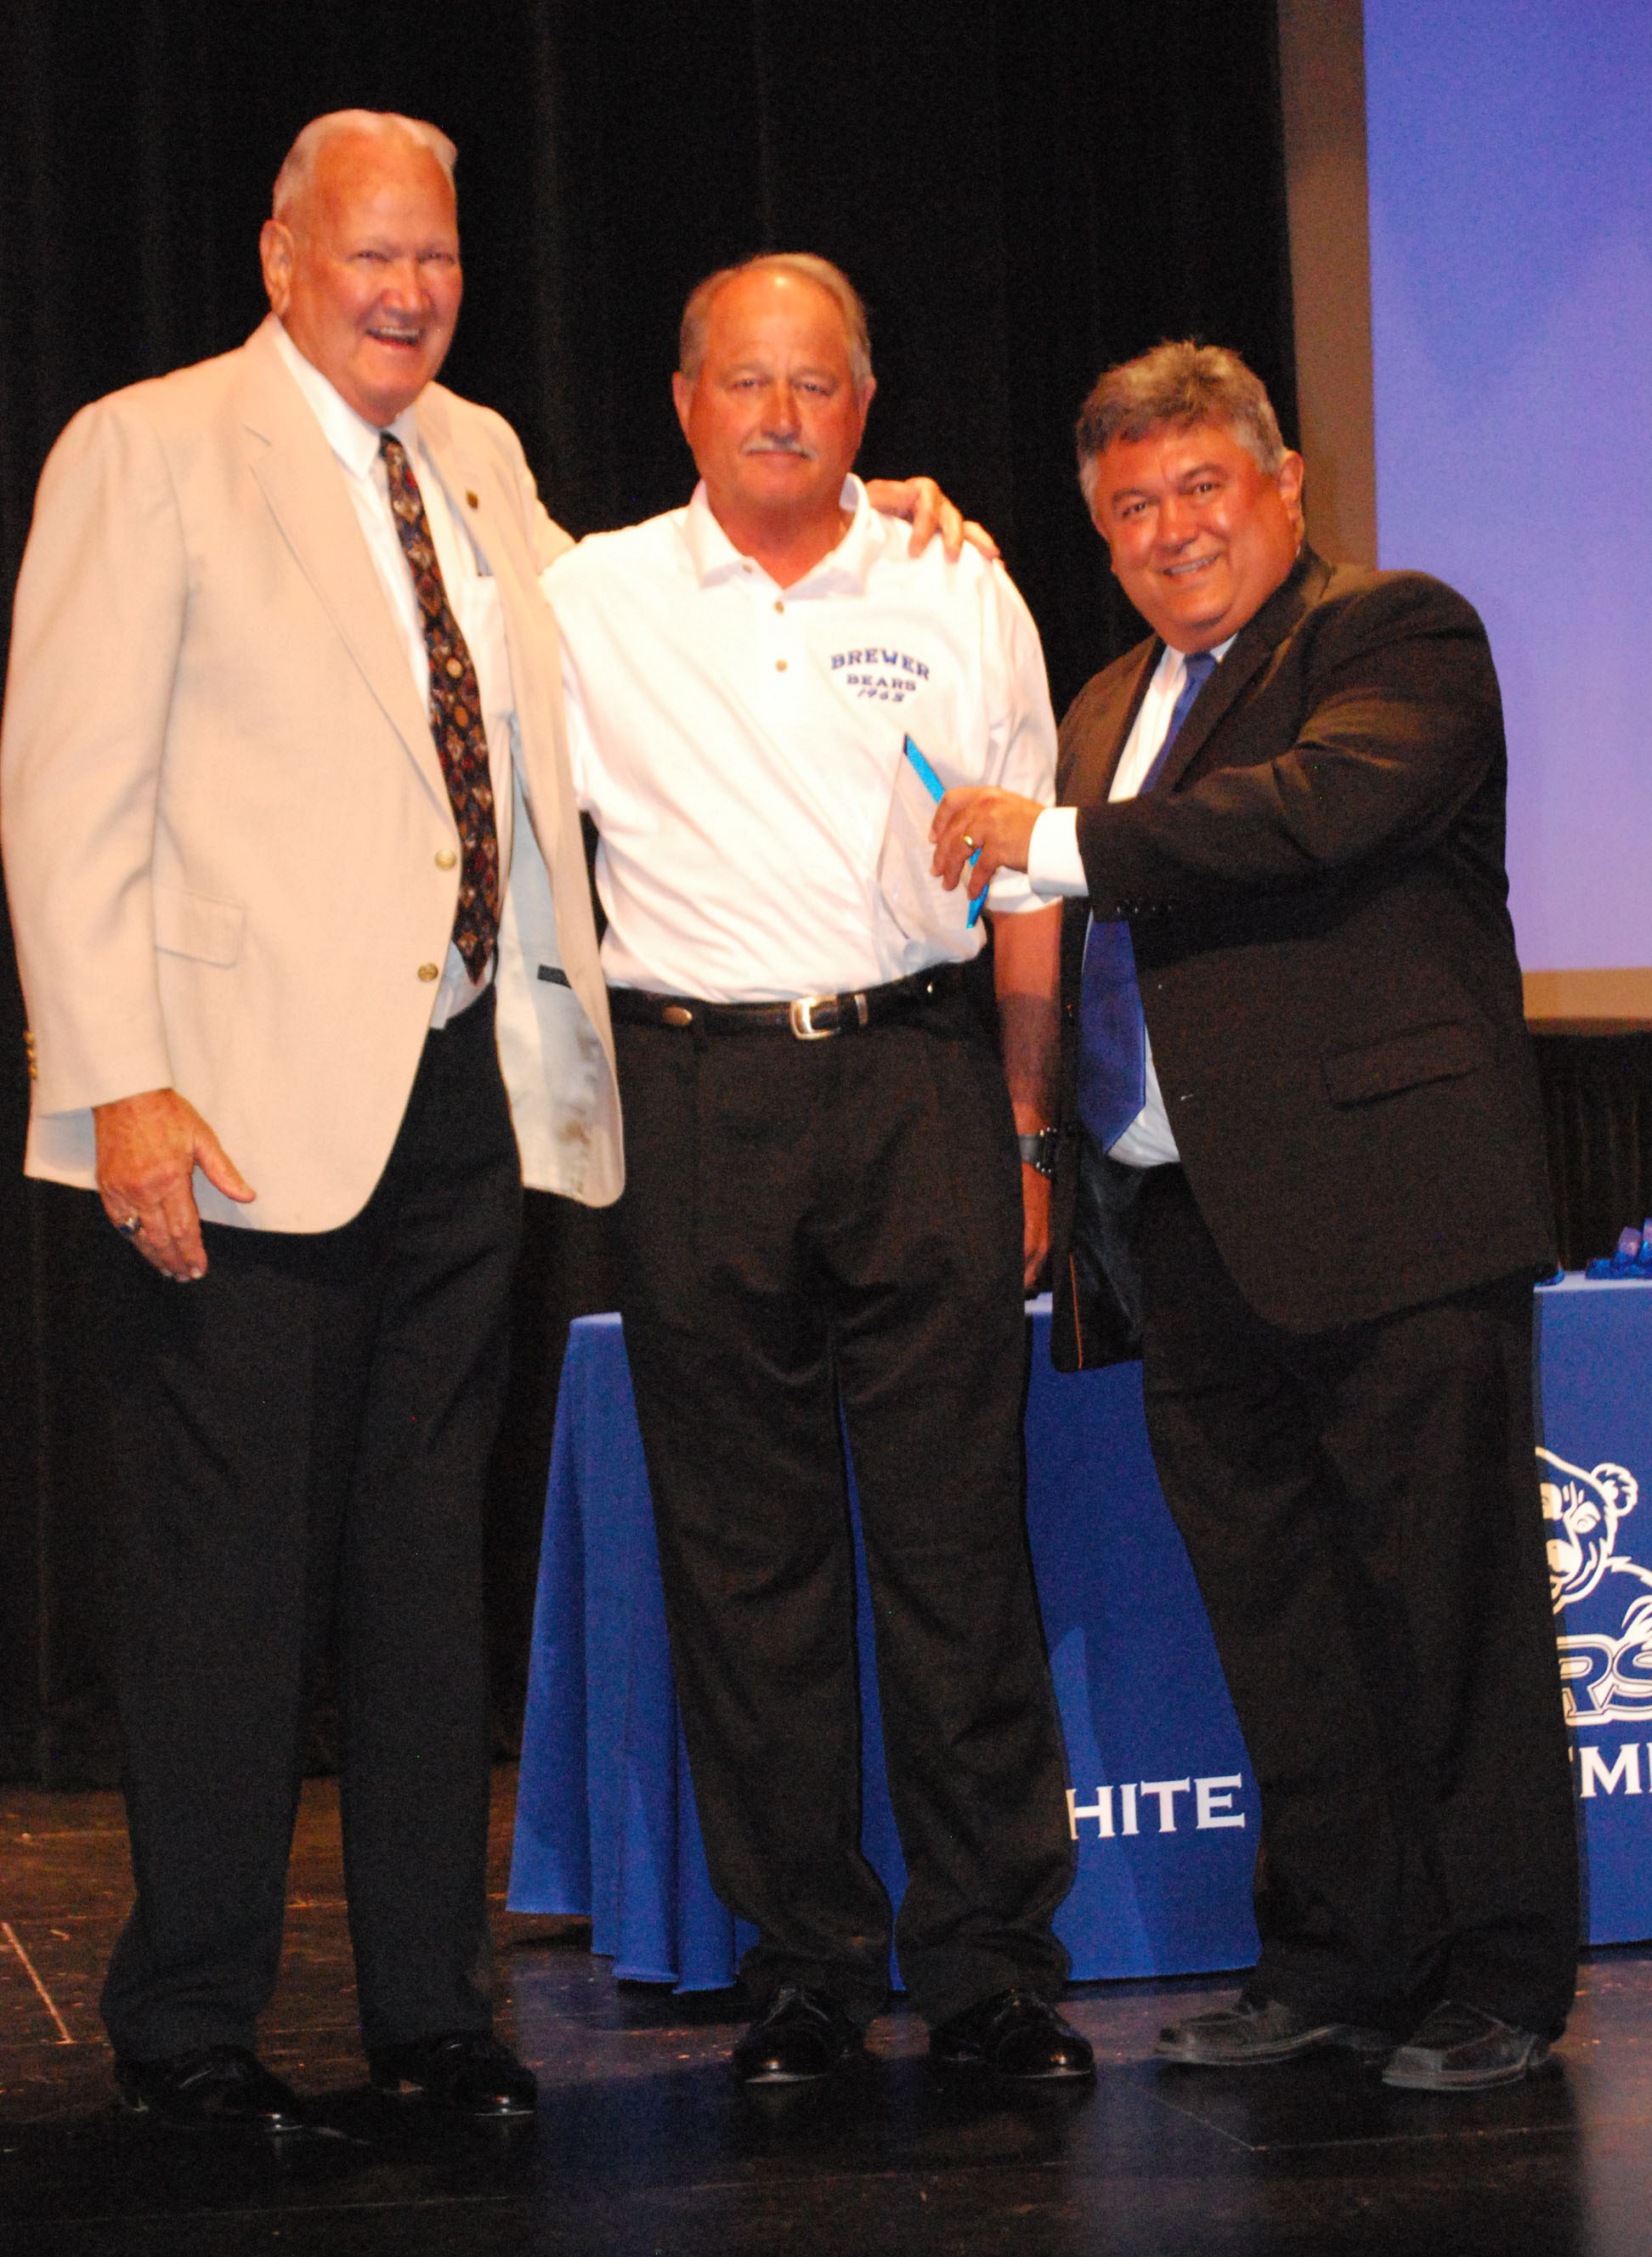 George Clark is pictured with Coach Don Walker and Superintendent Frank Molinar.